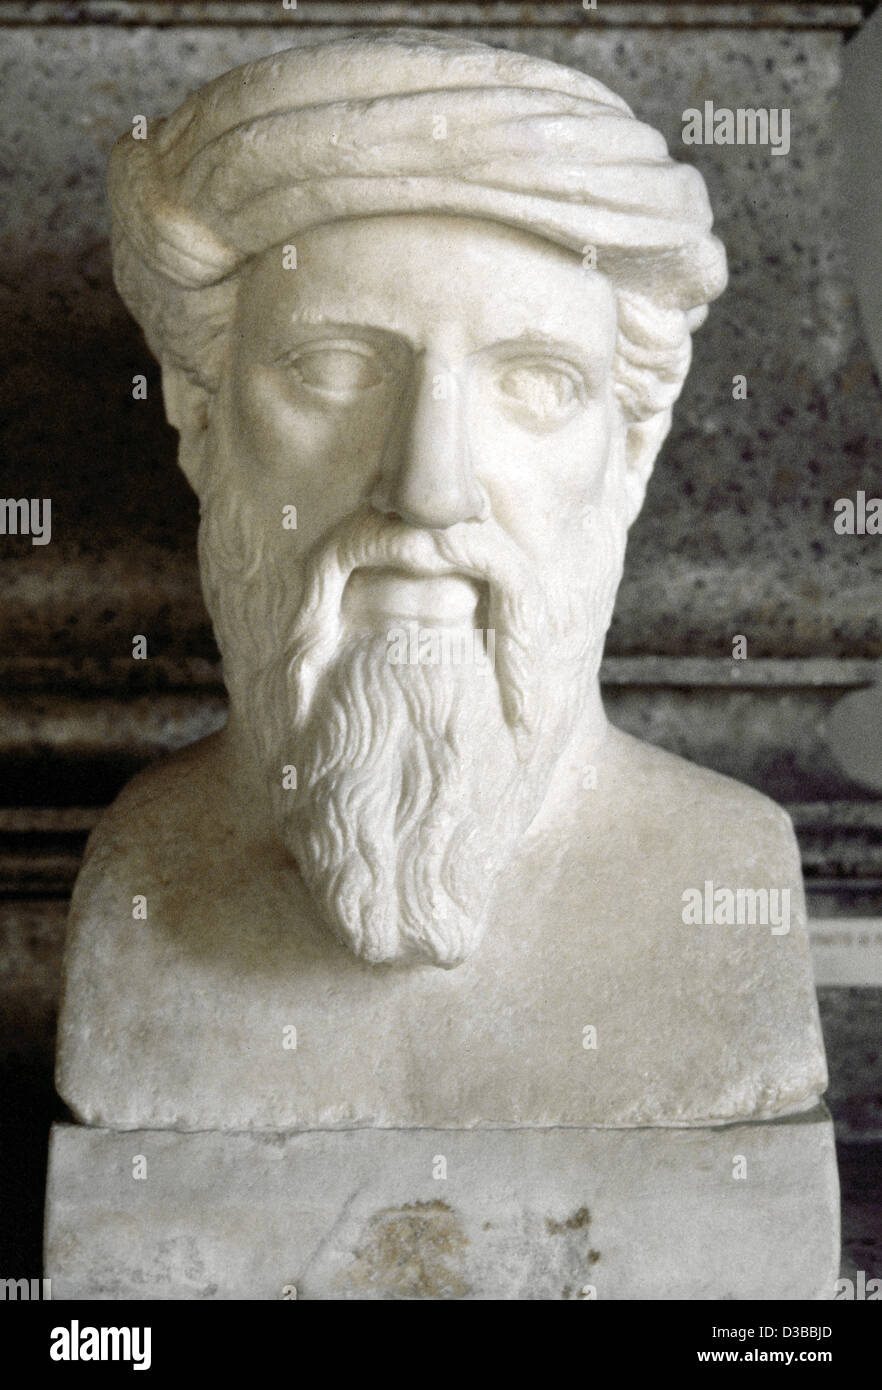 theorem stock photos theorem stock images  pythagoras of samos 570 bc 495 bc greek philosopher and mathematician